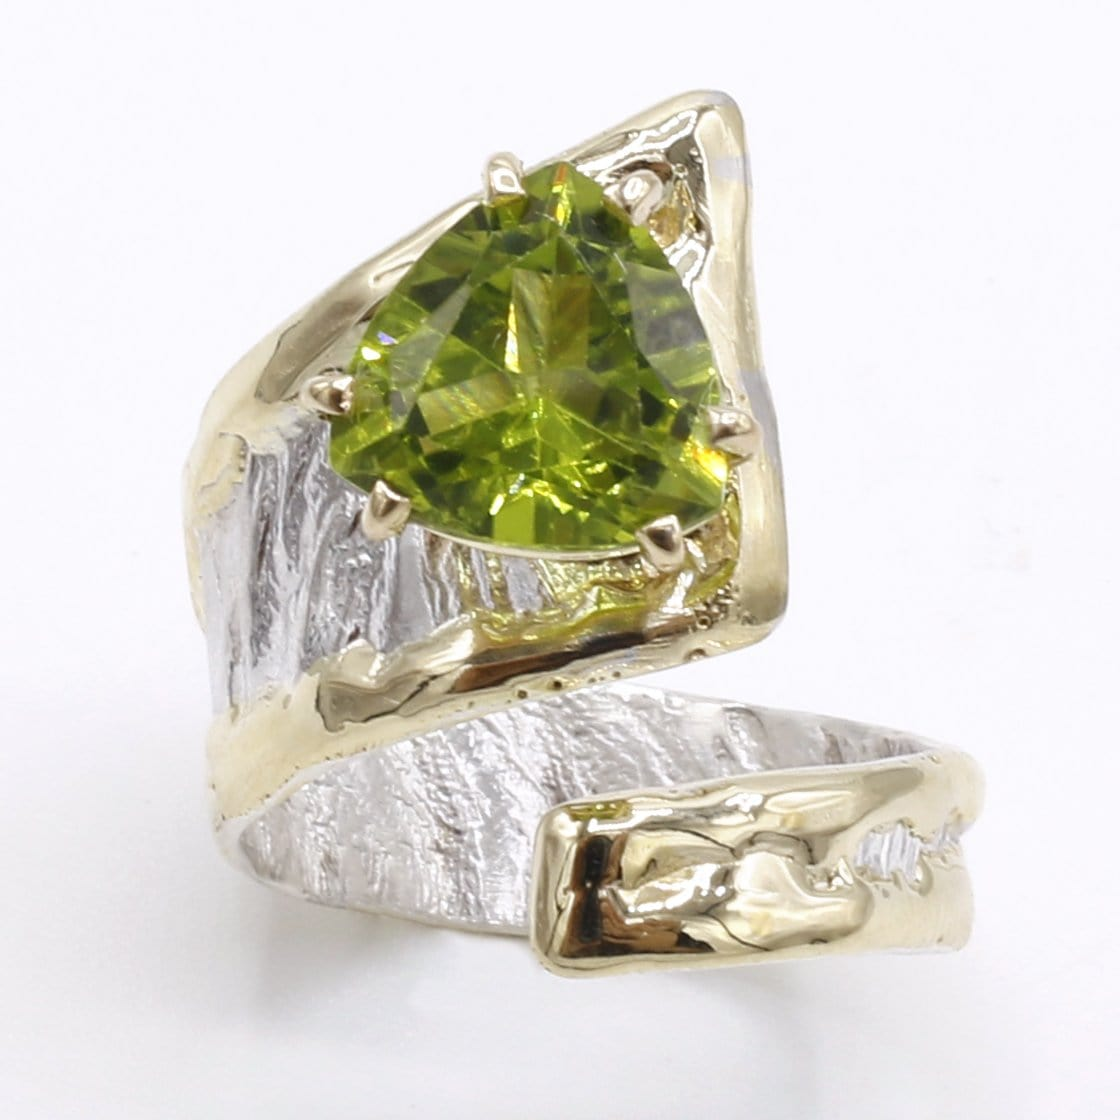 14K Gold & Crystalline Silver Peridot Ring - 40348-Fusion Designs-Renee Taylor Gallery